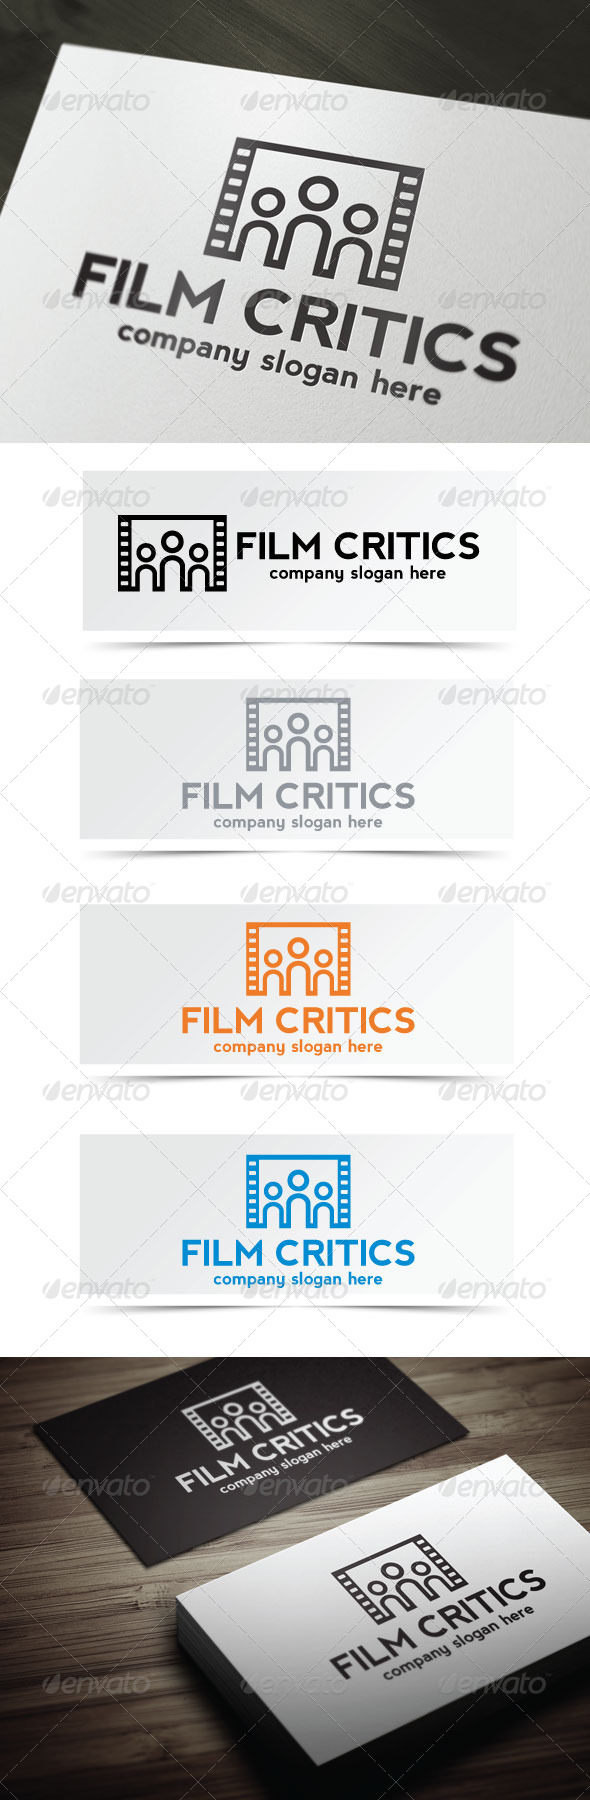 Film Critics - Objects Logo Templates